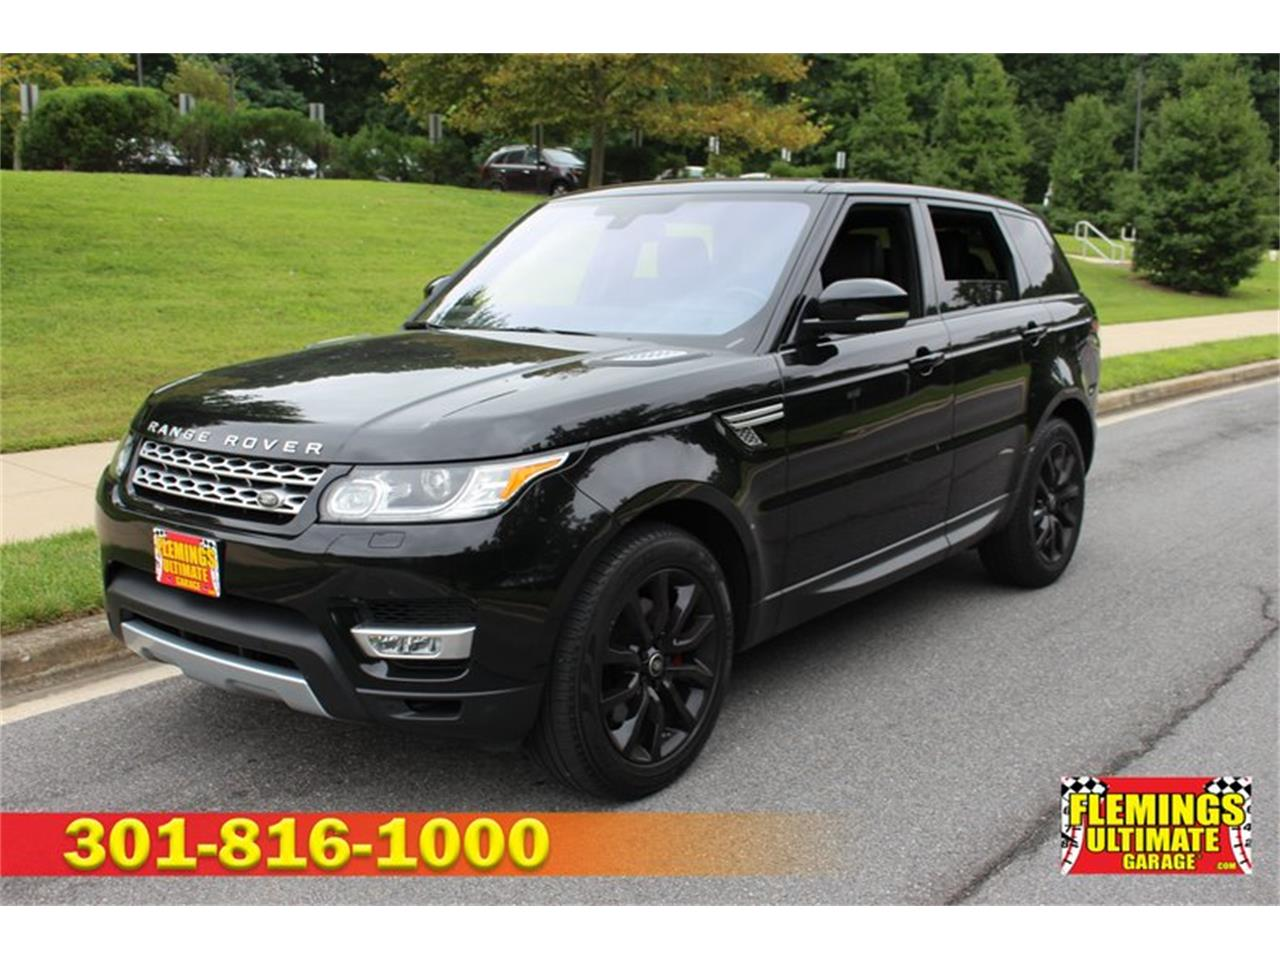 Garage Sale Rover For Sale 2016 Land Rover Range Rover In Rockville Maryland